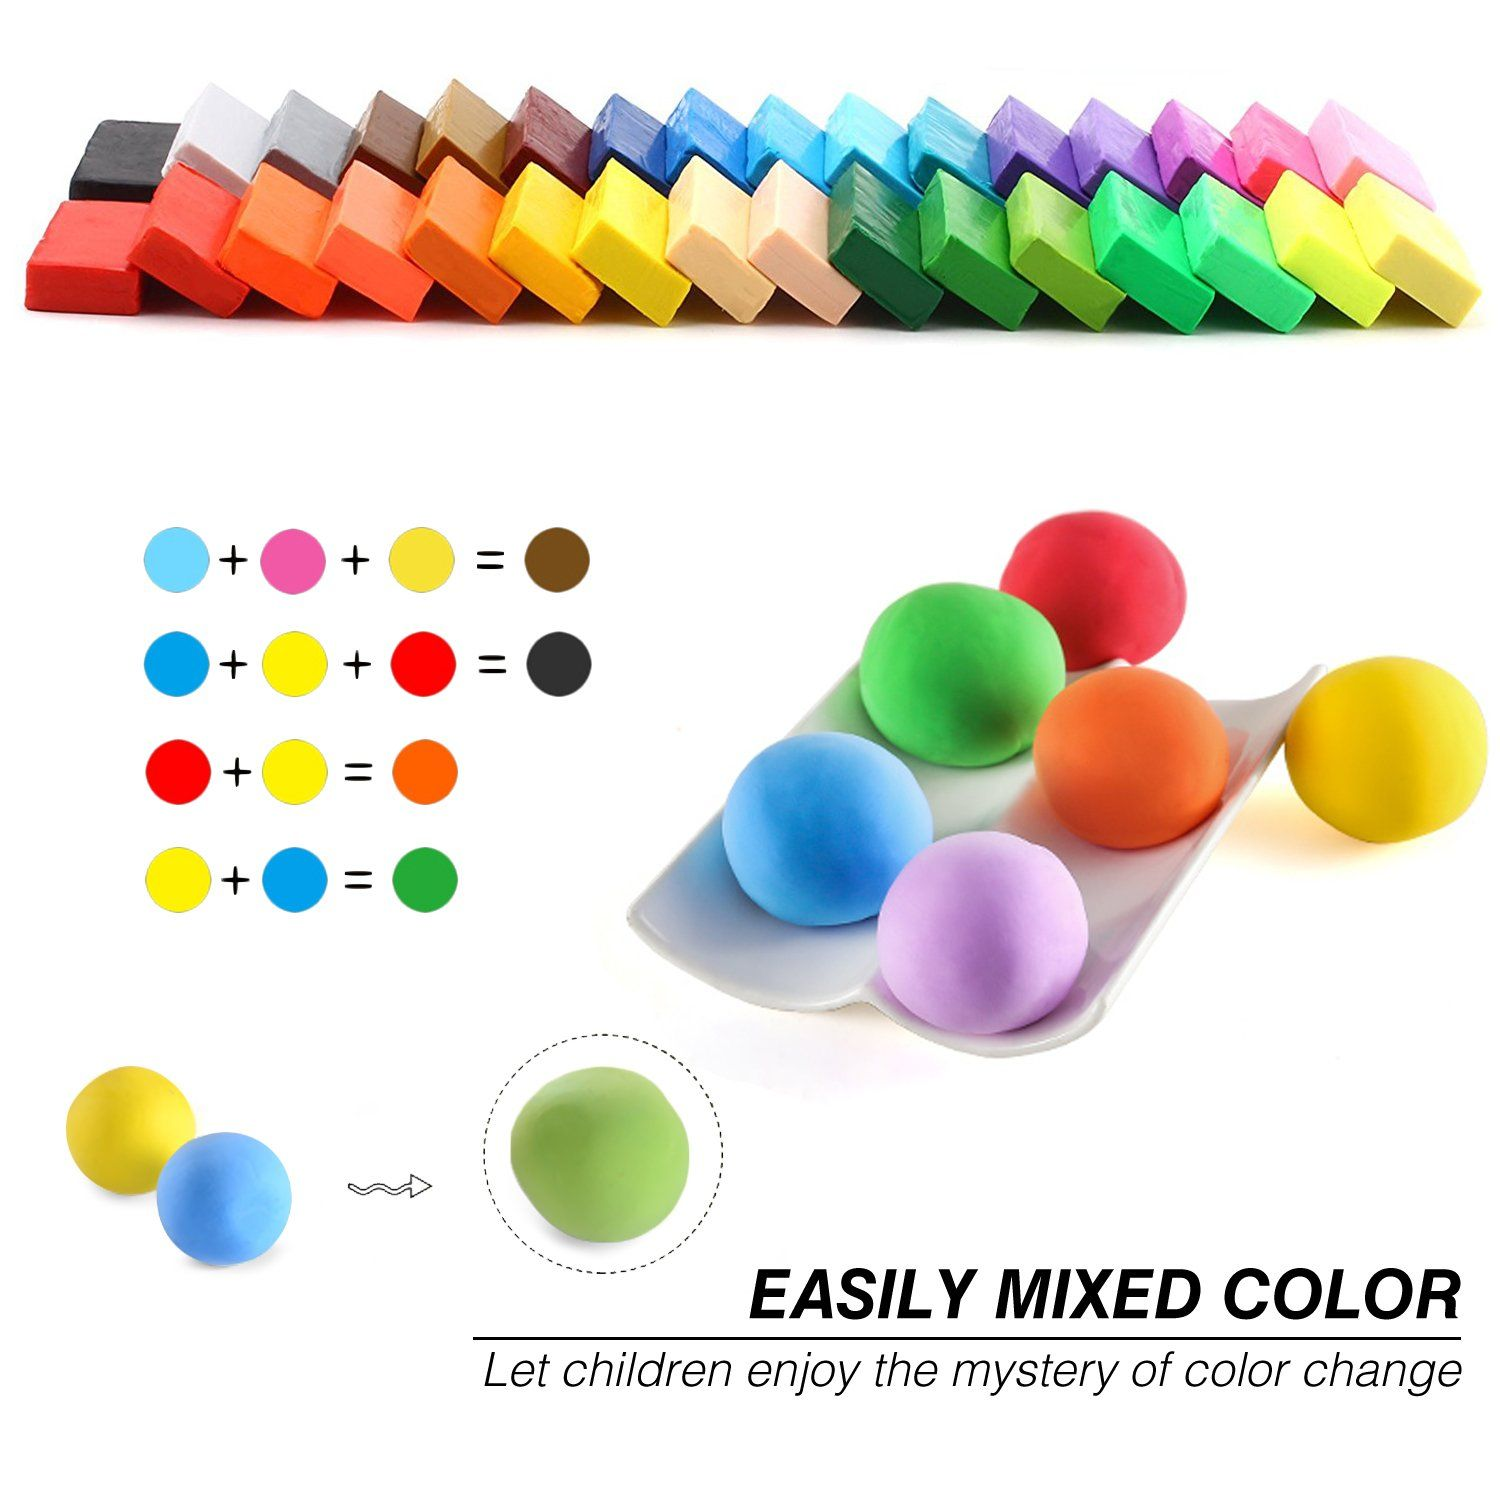 Polymer Clay Kit 32 Blocks Oven Bake Molding For Kids DIY Soft Colors Air Dry Se